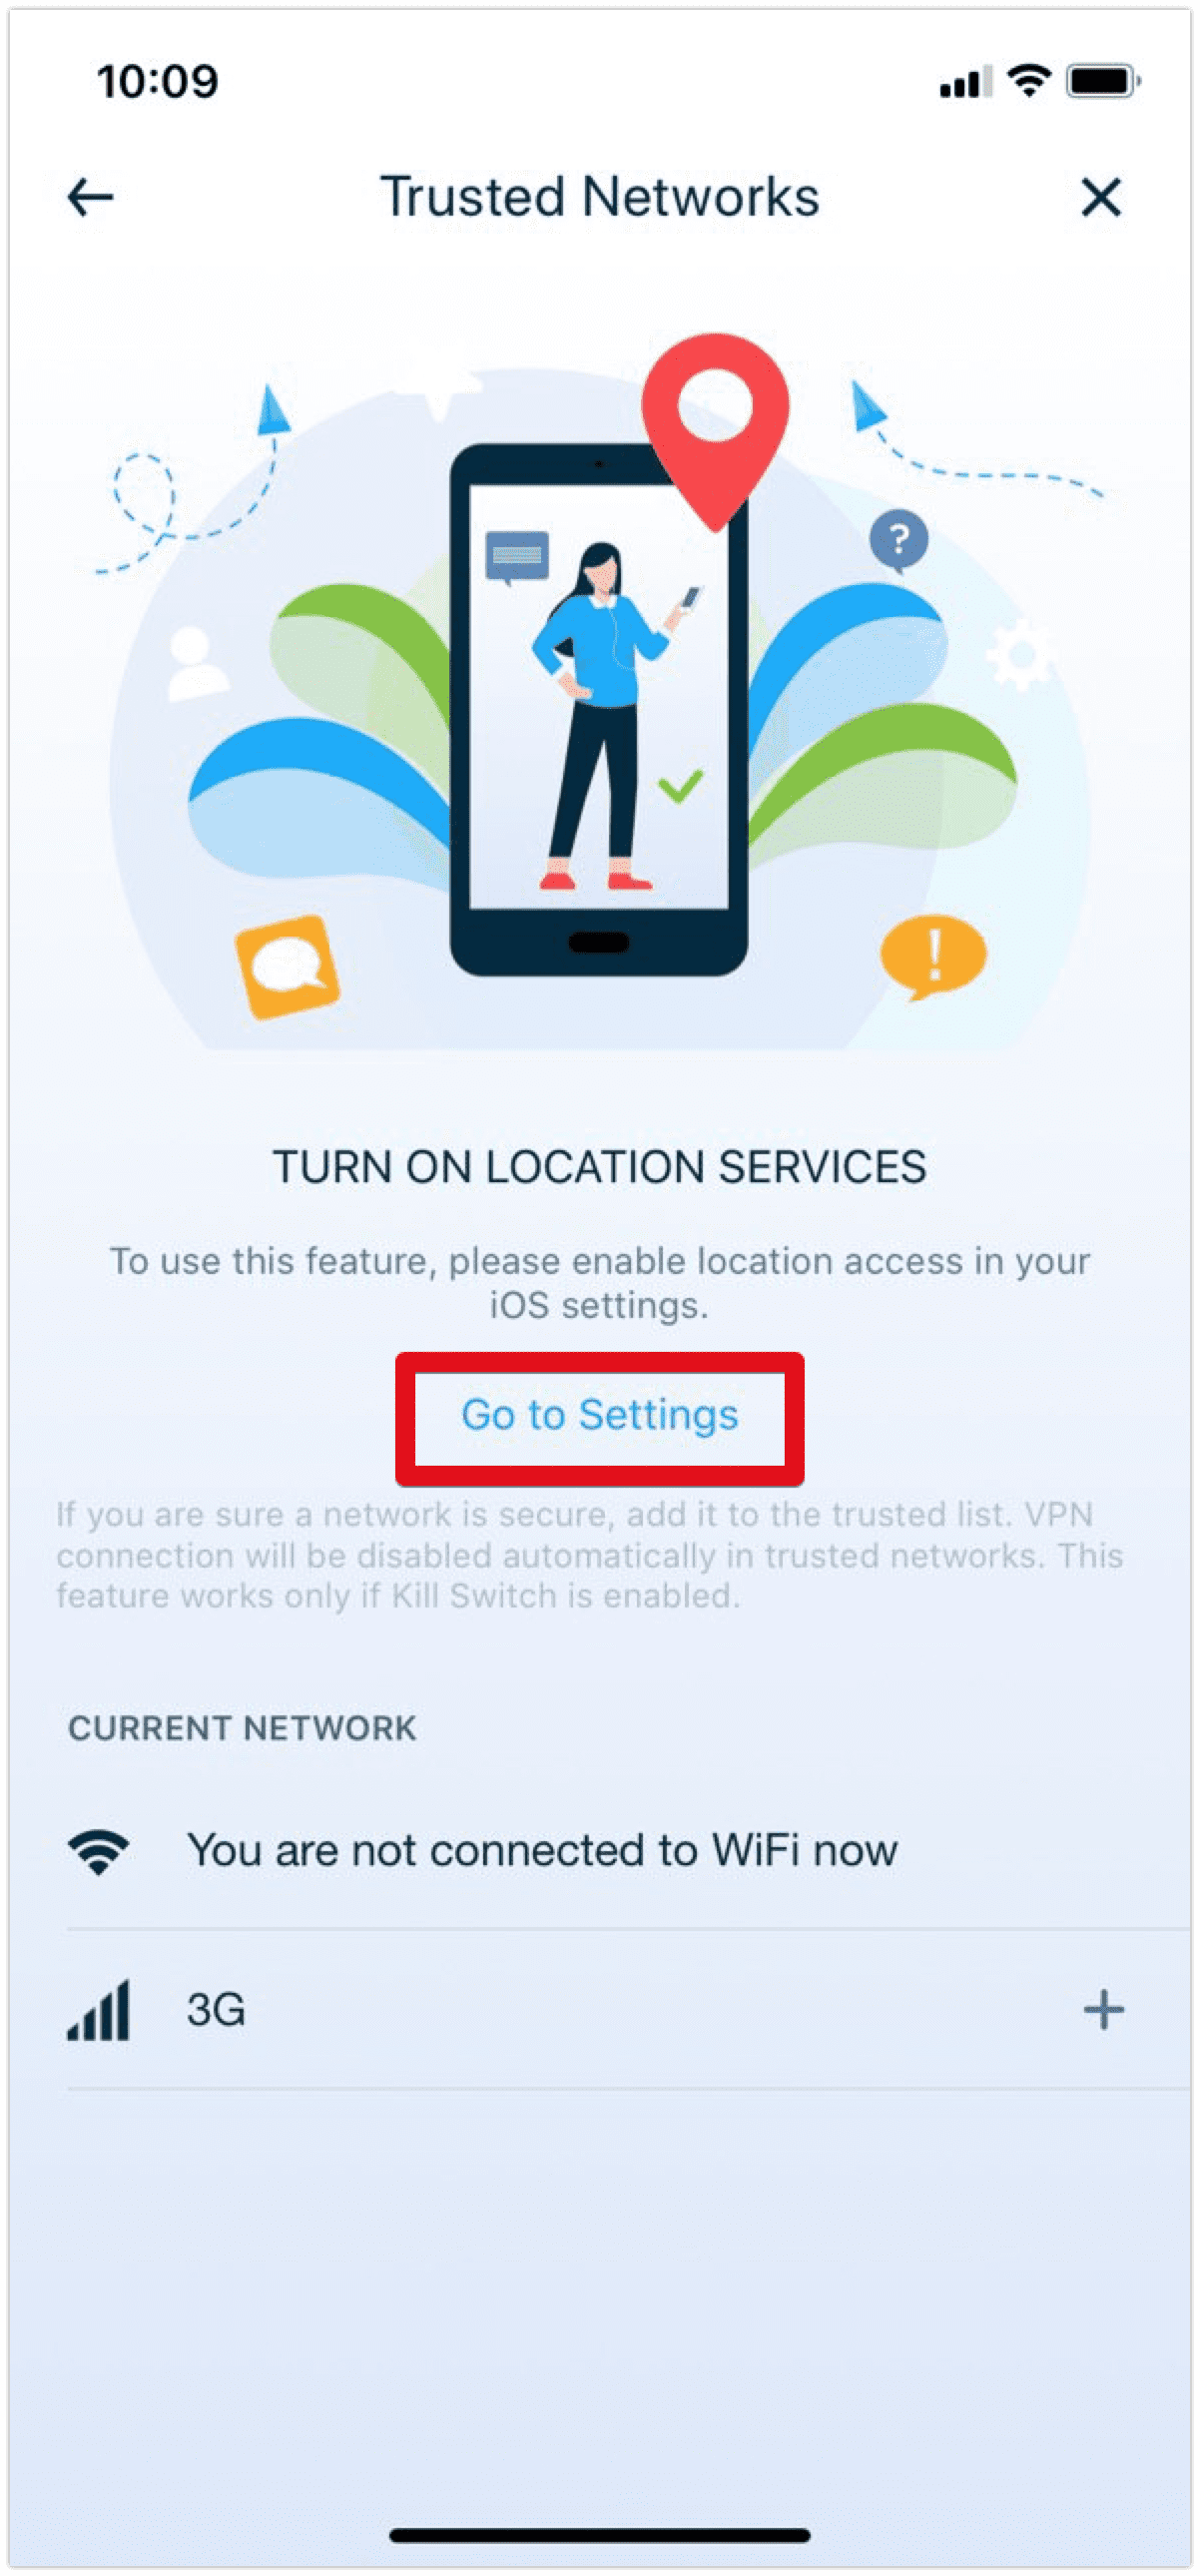 Turn on Location Services to use the Trusted Networks feature